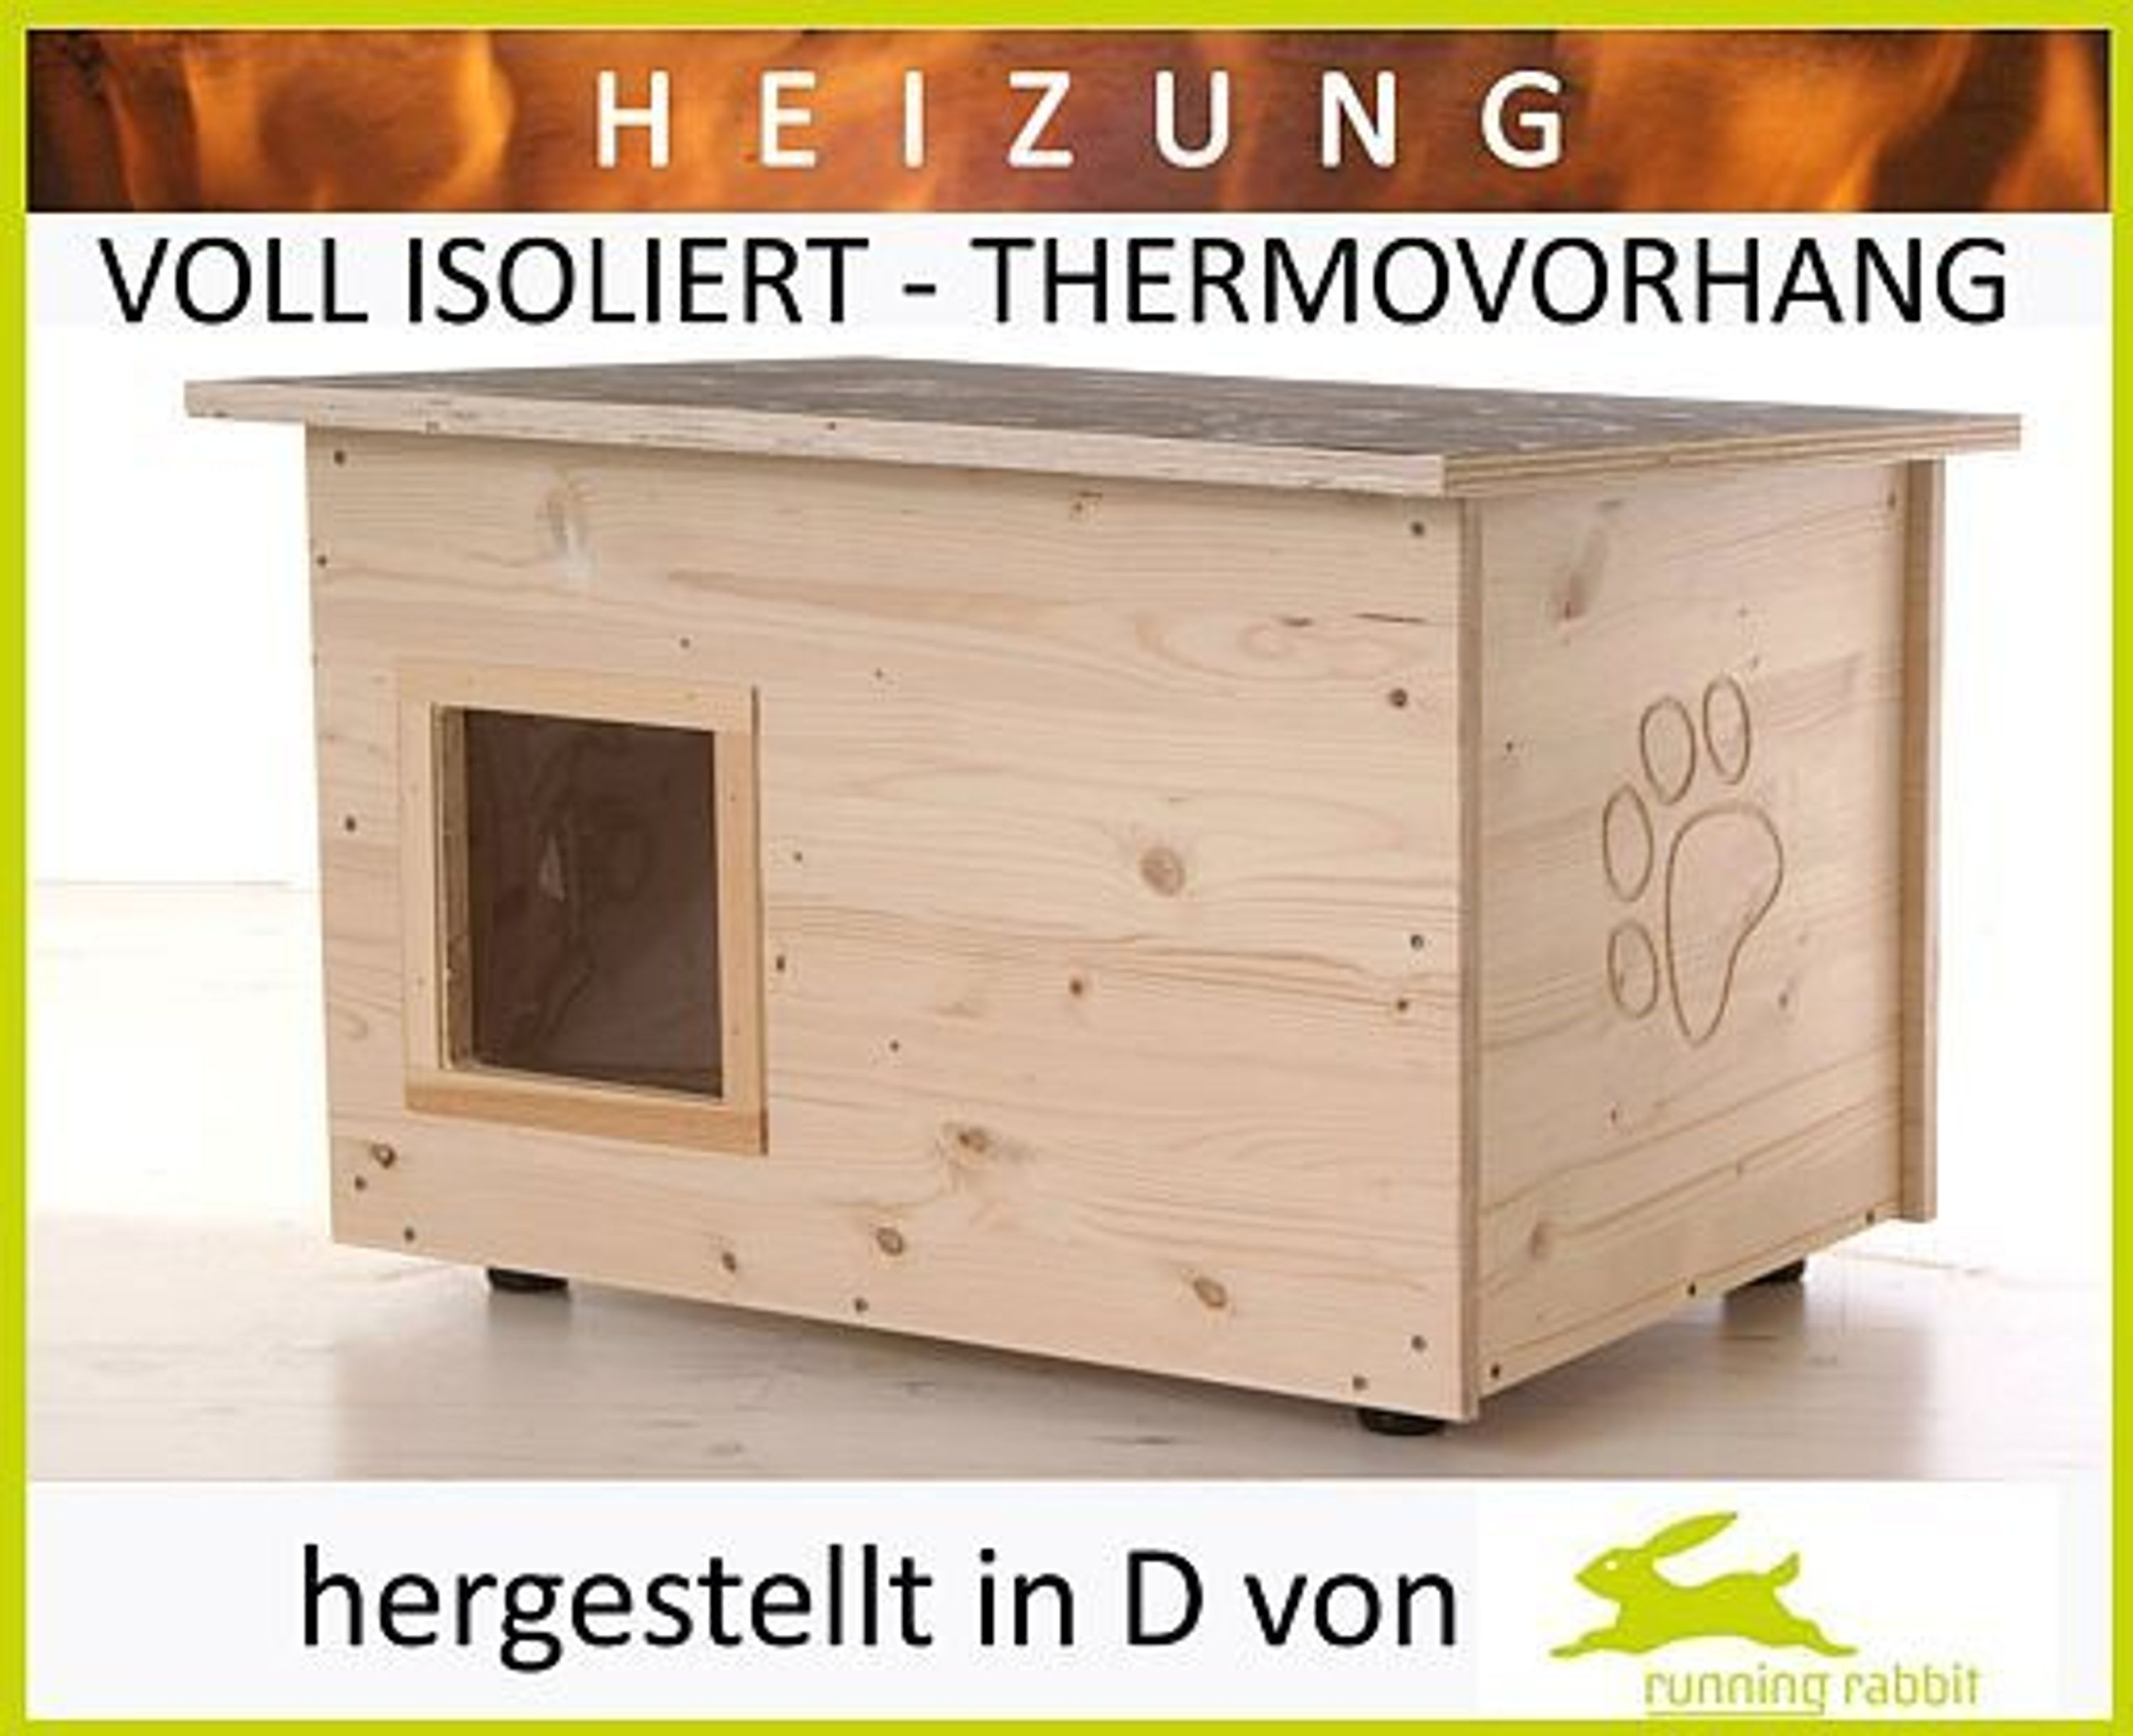 katzenhaus mit heizung voll w rmeged mmt winterfest thermovorhang katzenh tte kaufen bei. Black Bedroom Furniture Sets. Home Design Ideas